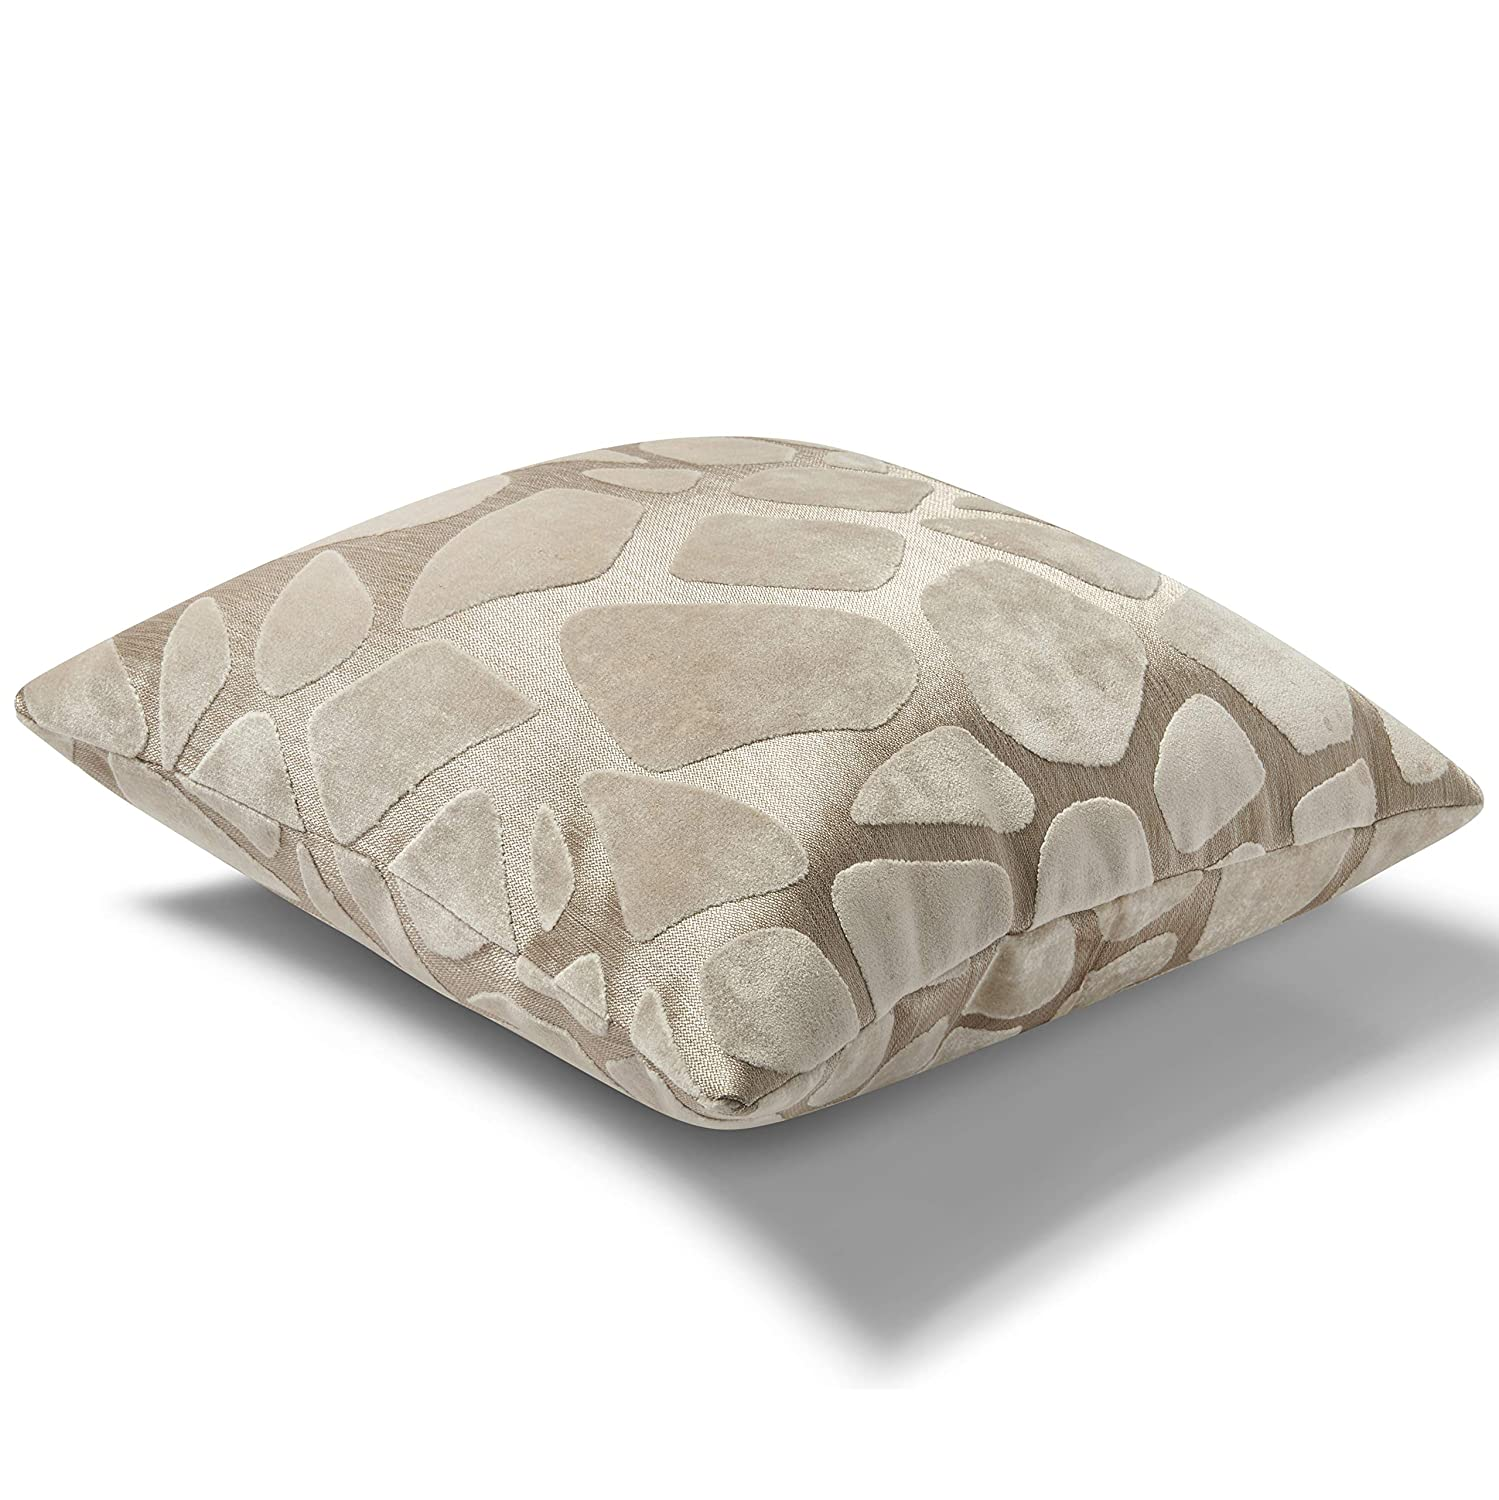 Pillow Pops Pearl Pillow Milky Way Set, White Home Accent D cor Throw Bolster, Luxury Designer Upholstery Cushion 18x18x4 Inch Made in USA